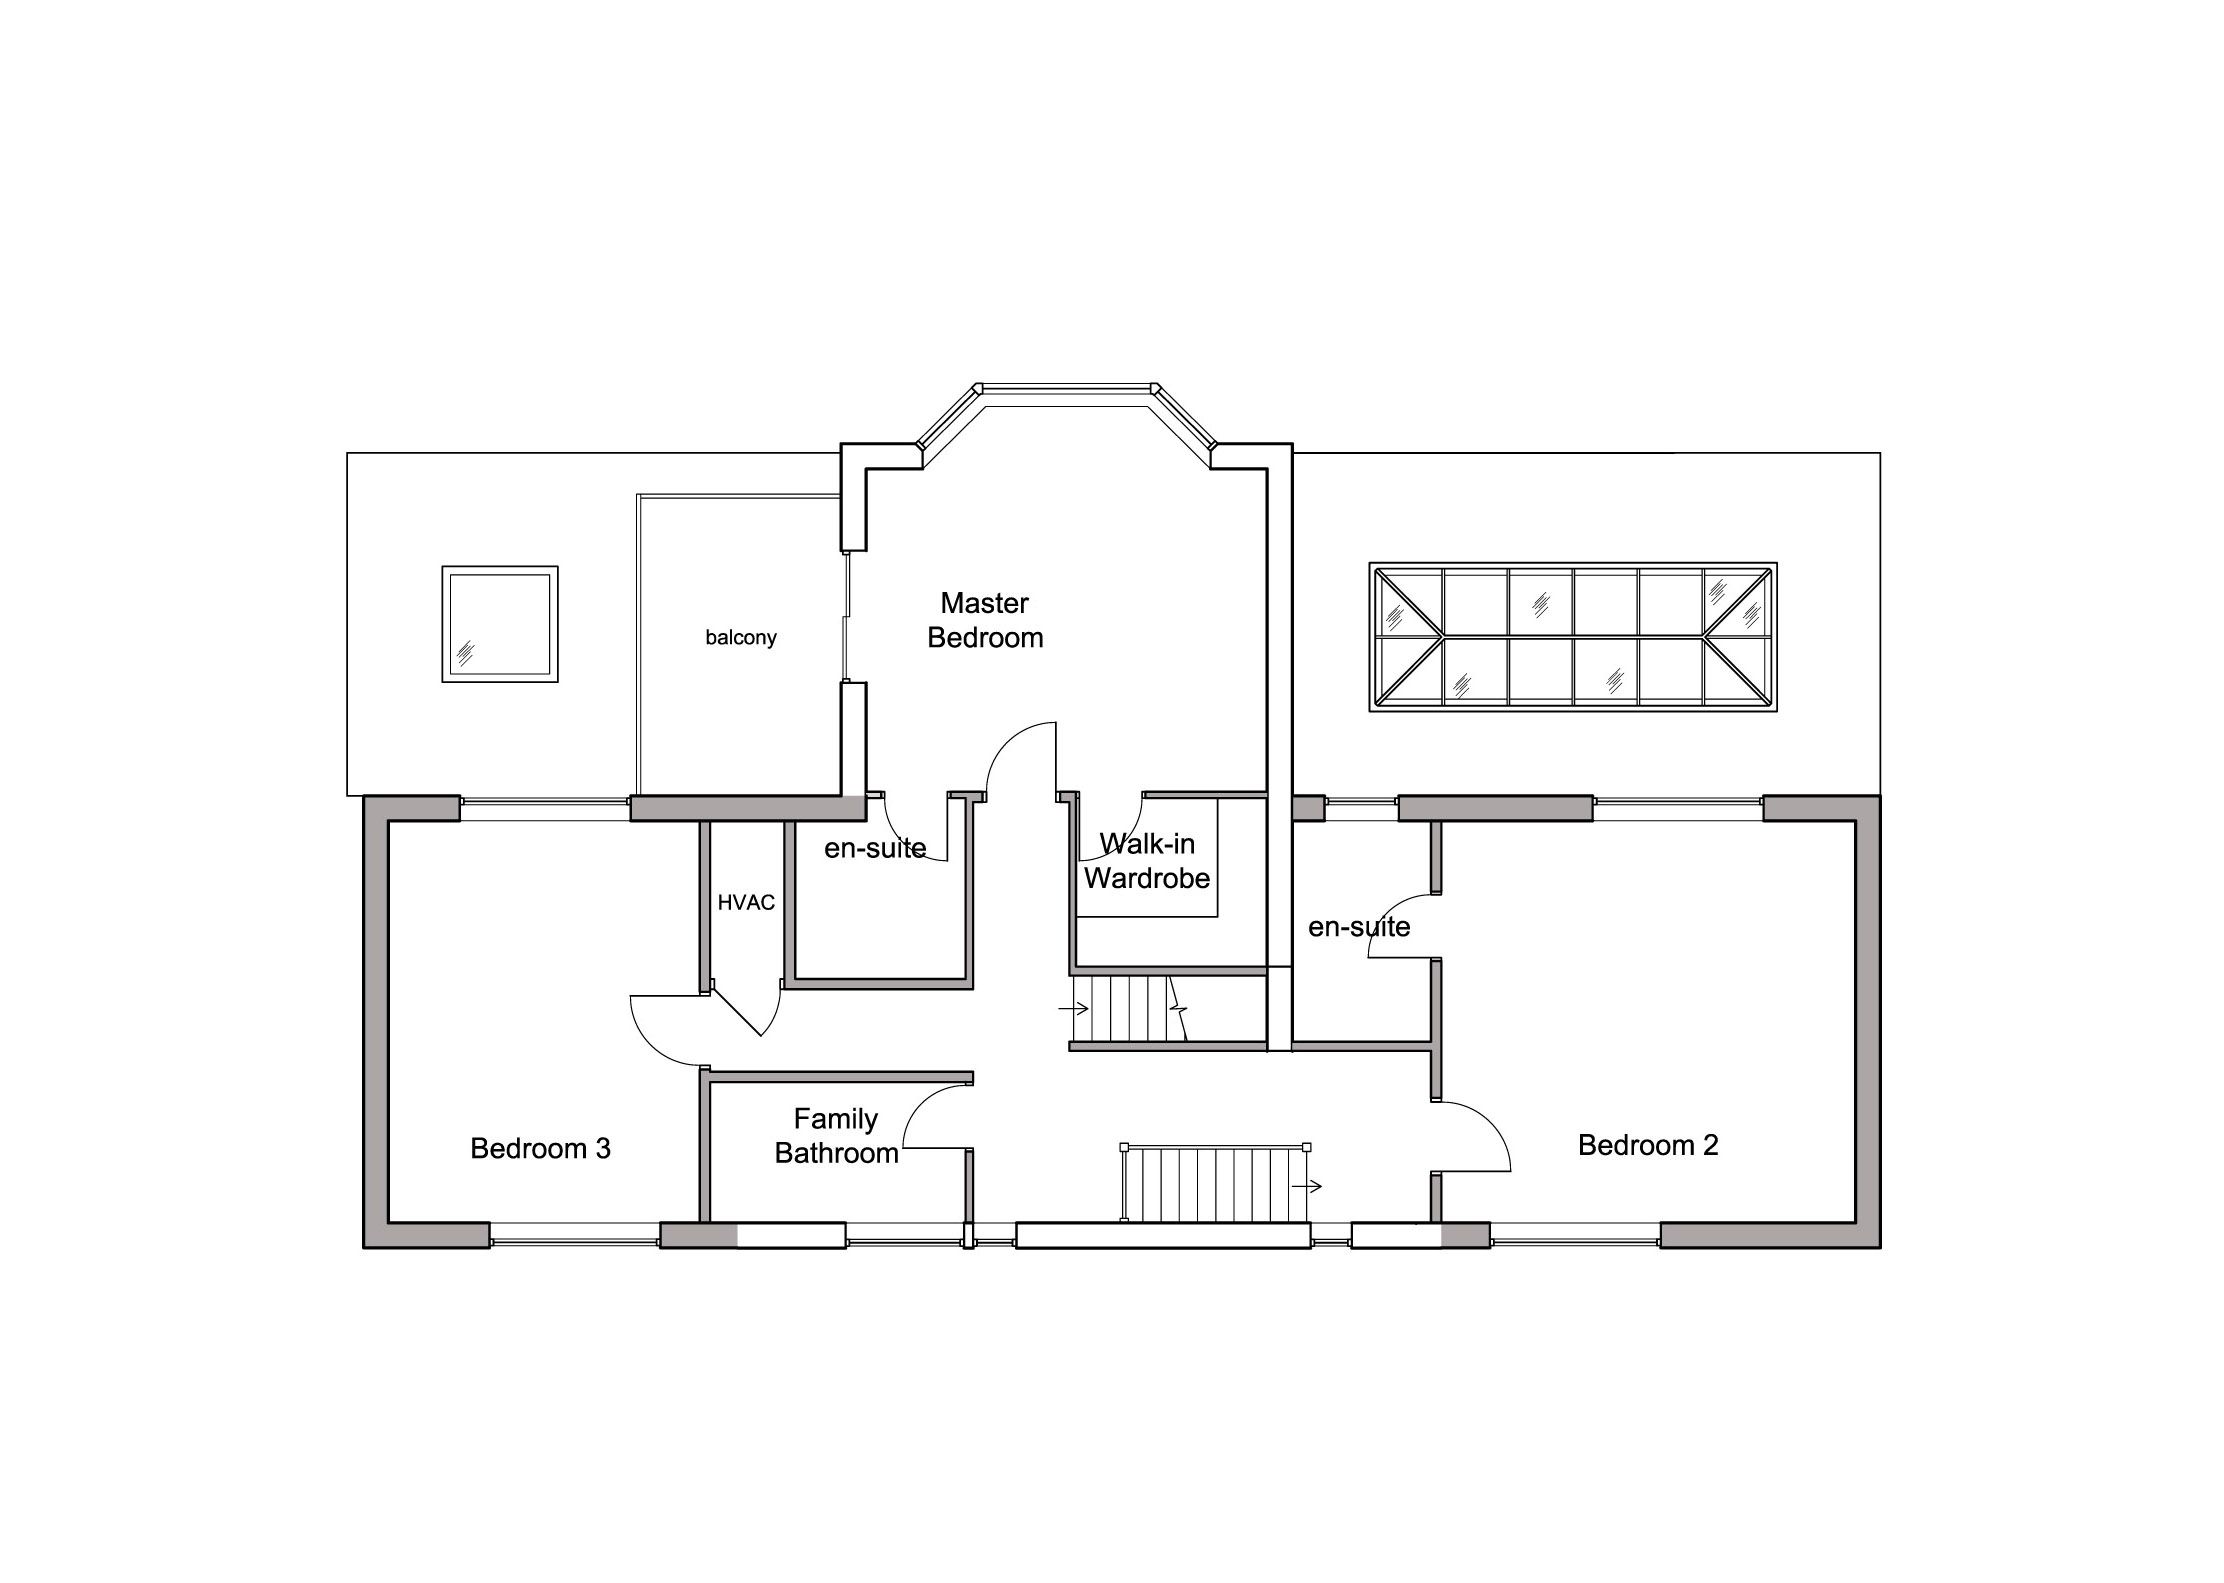 Planning Applications By CPA Design Proposed First Floor Plan